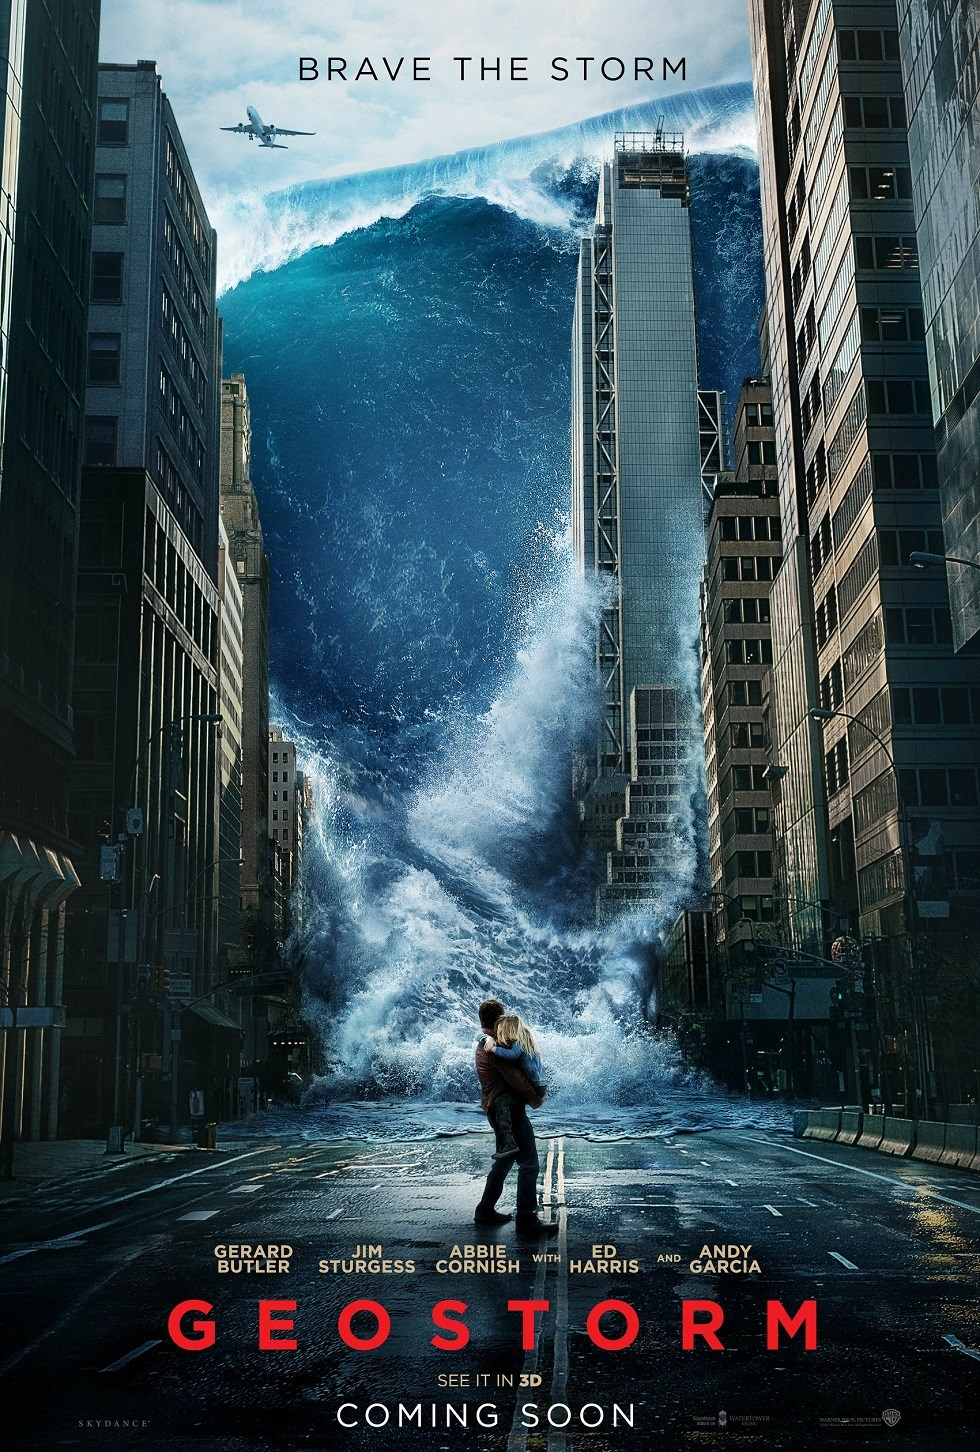 GEOSTORM now showing at Cavendish Square